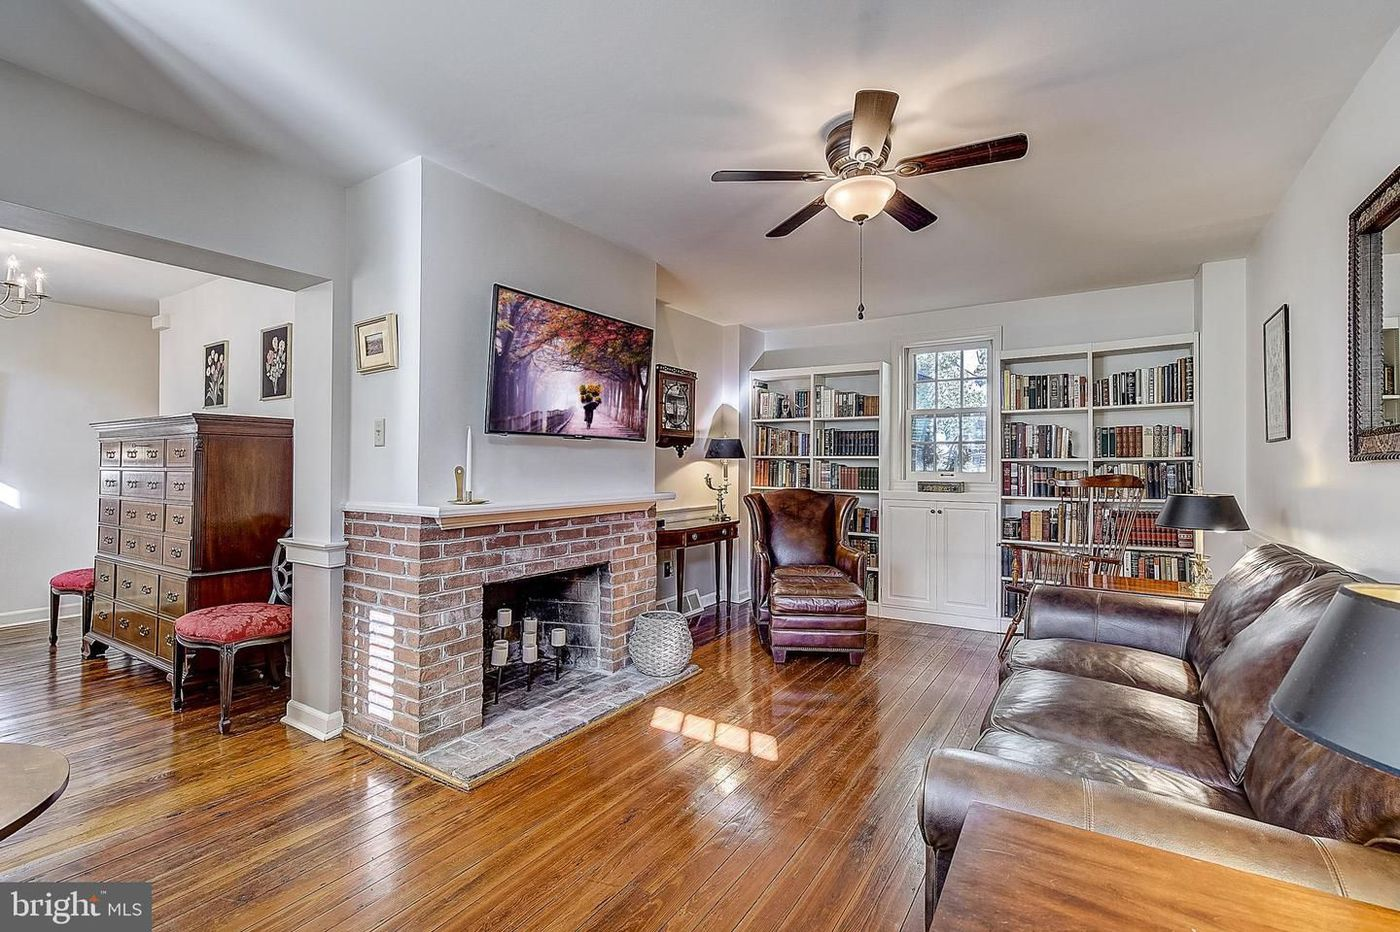 On the market: A 19th-century rowhouse in Old City for $669,900